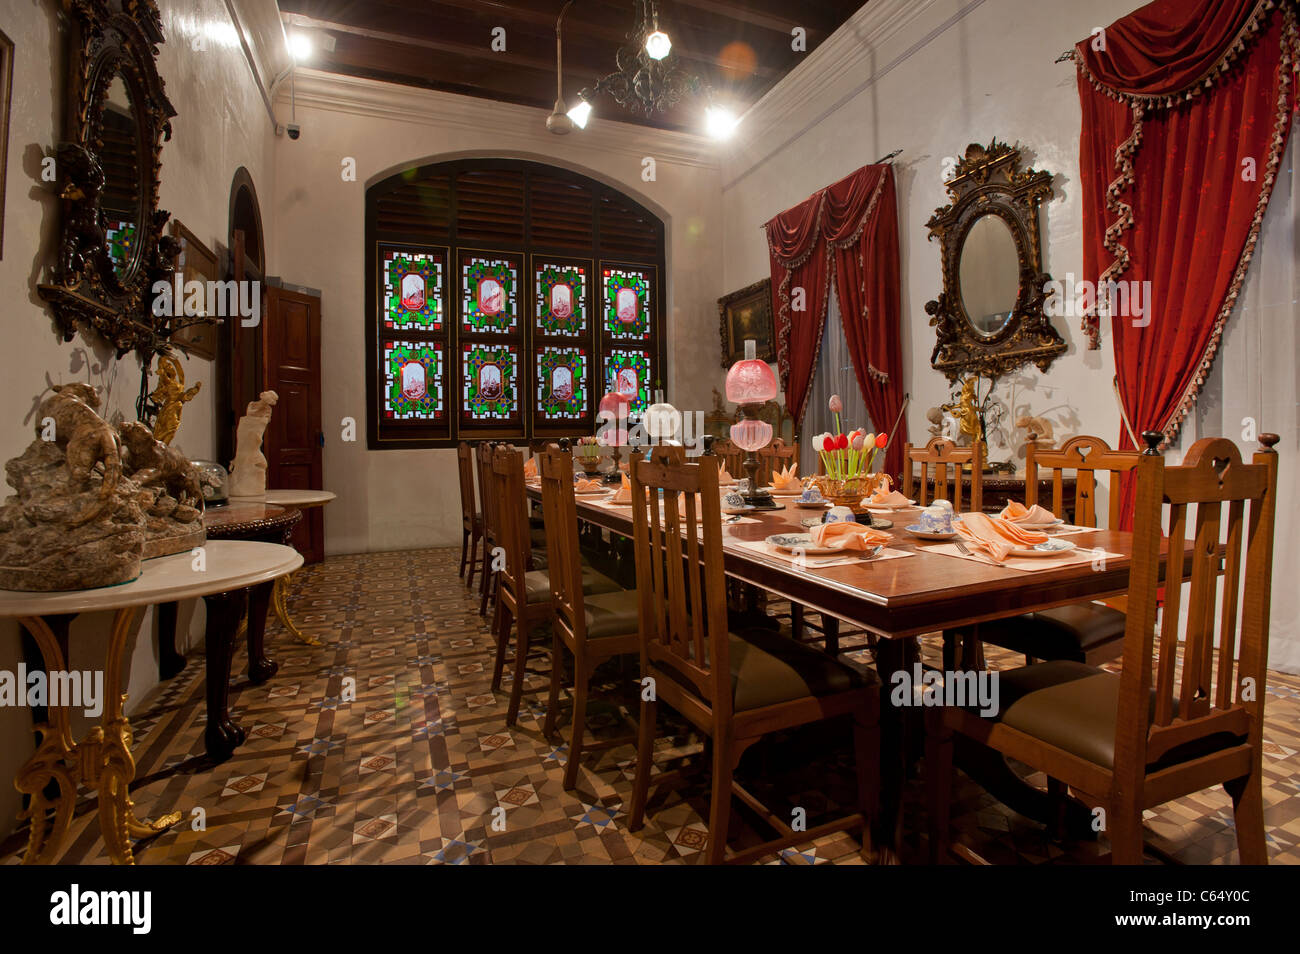 dining room in the peranakan mansion, george town, penang malaysia